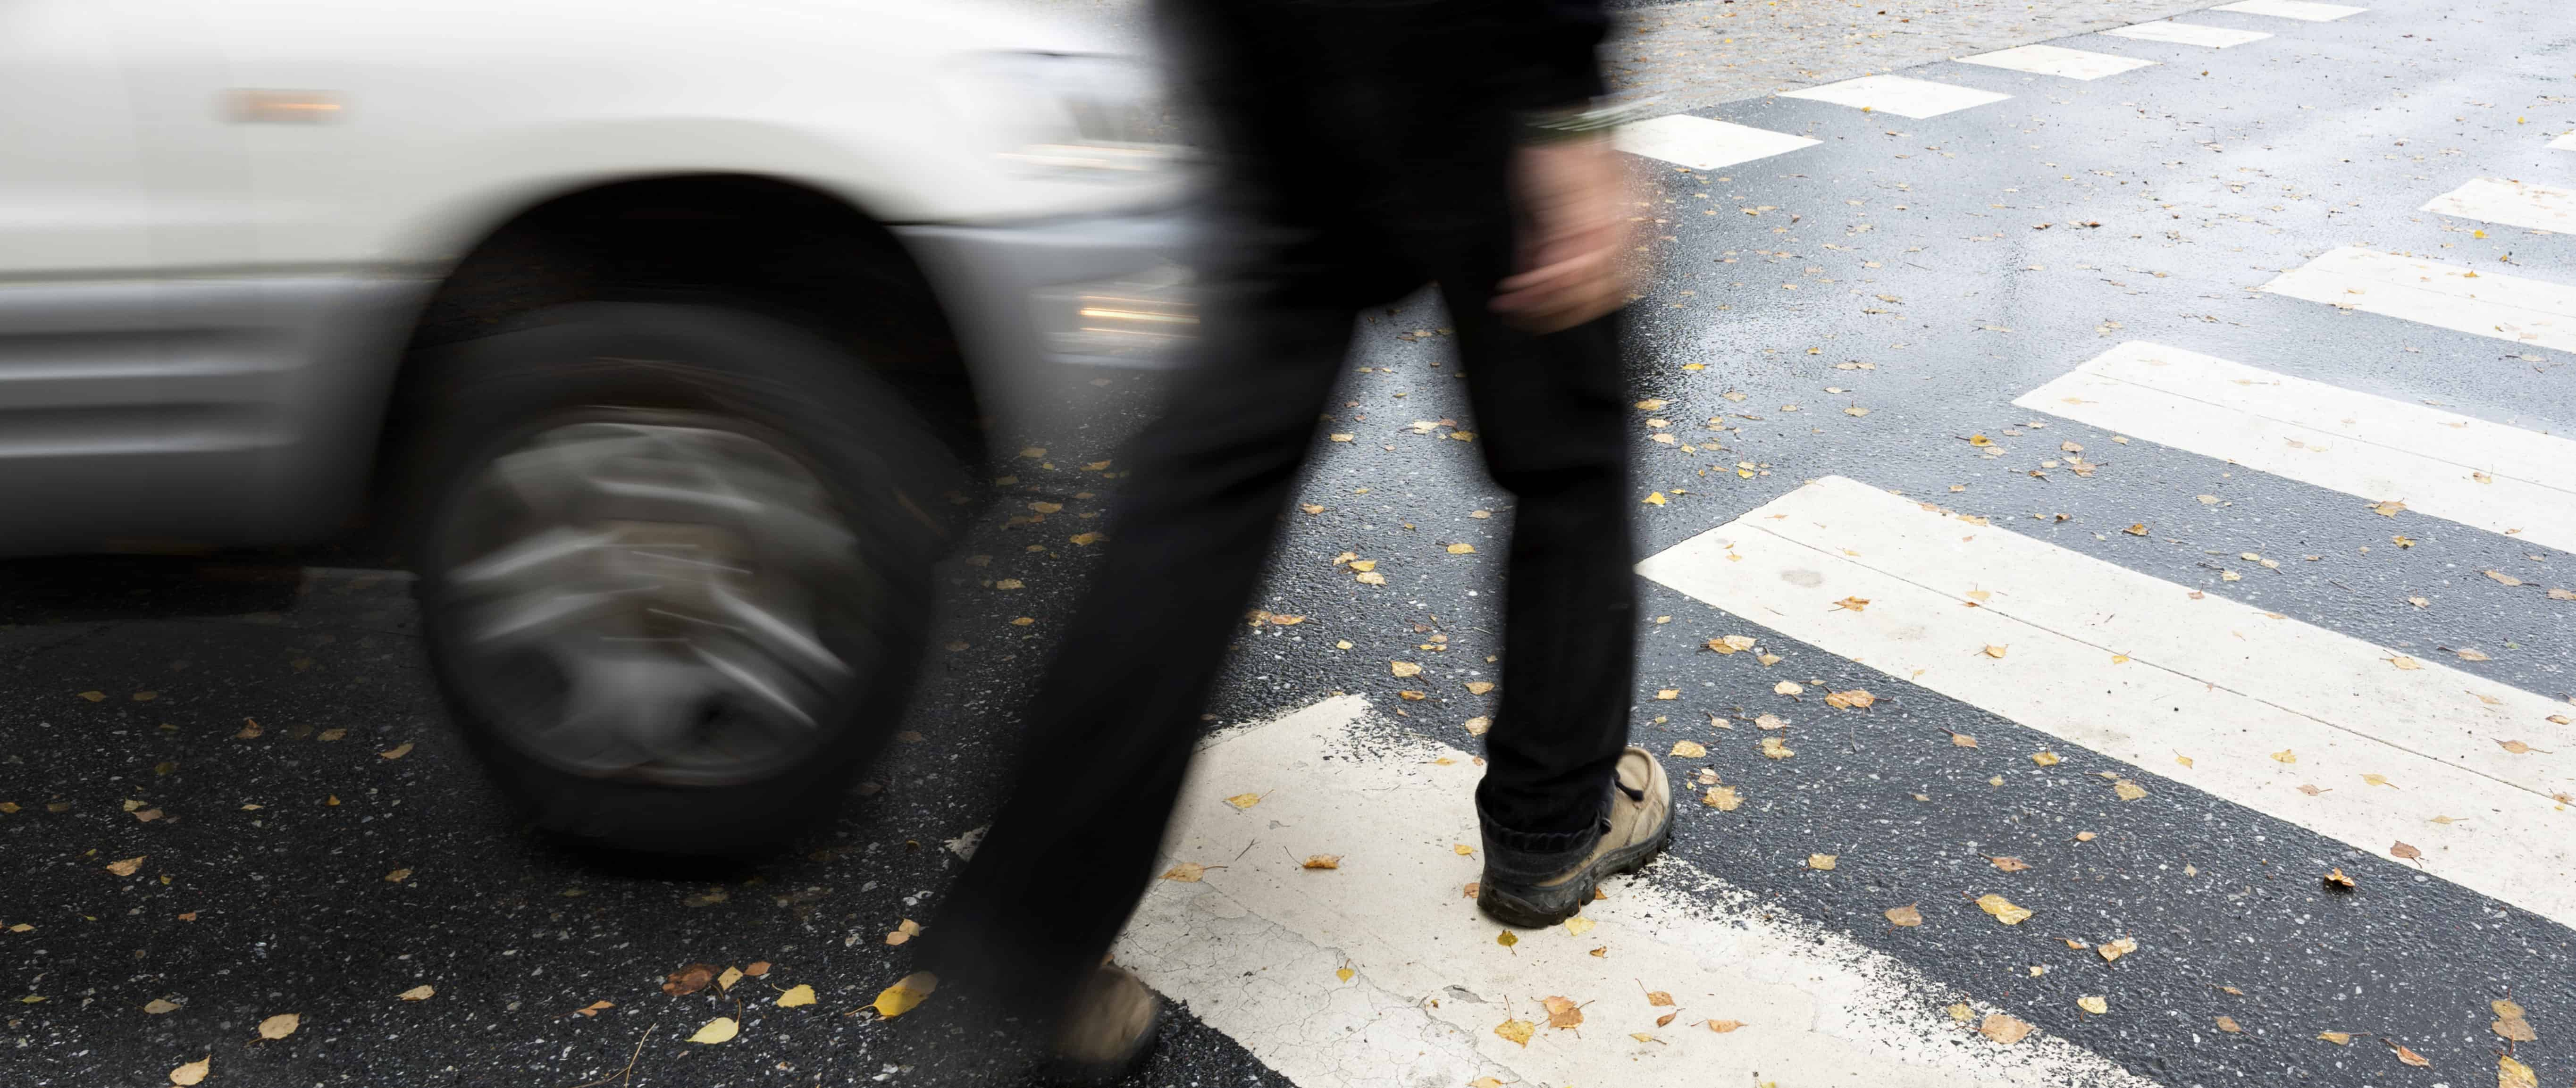 Valiente Mott has the experience to handle pedestrian accidents.